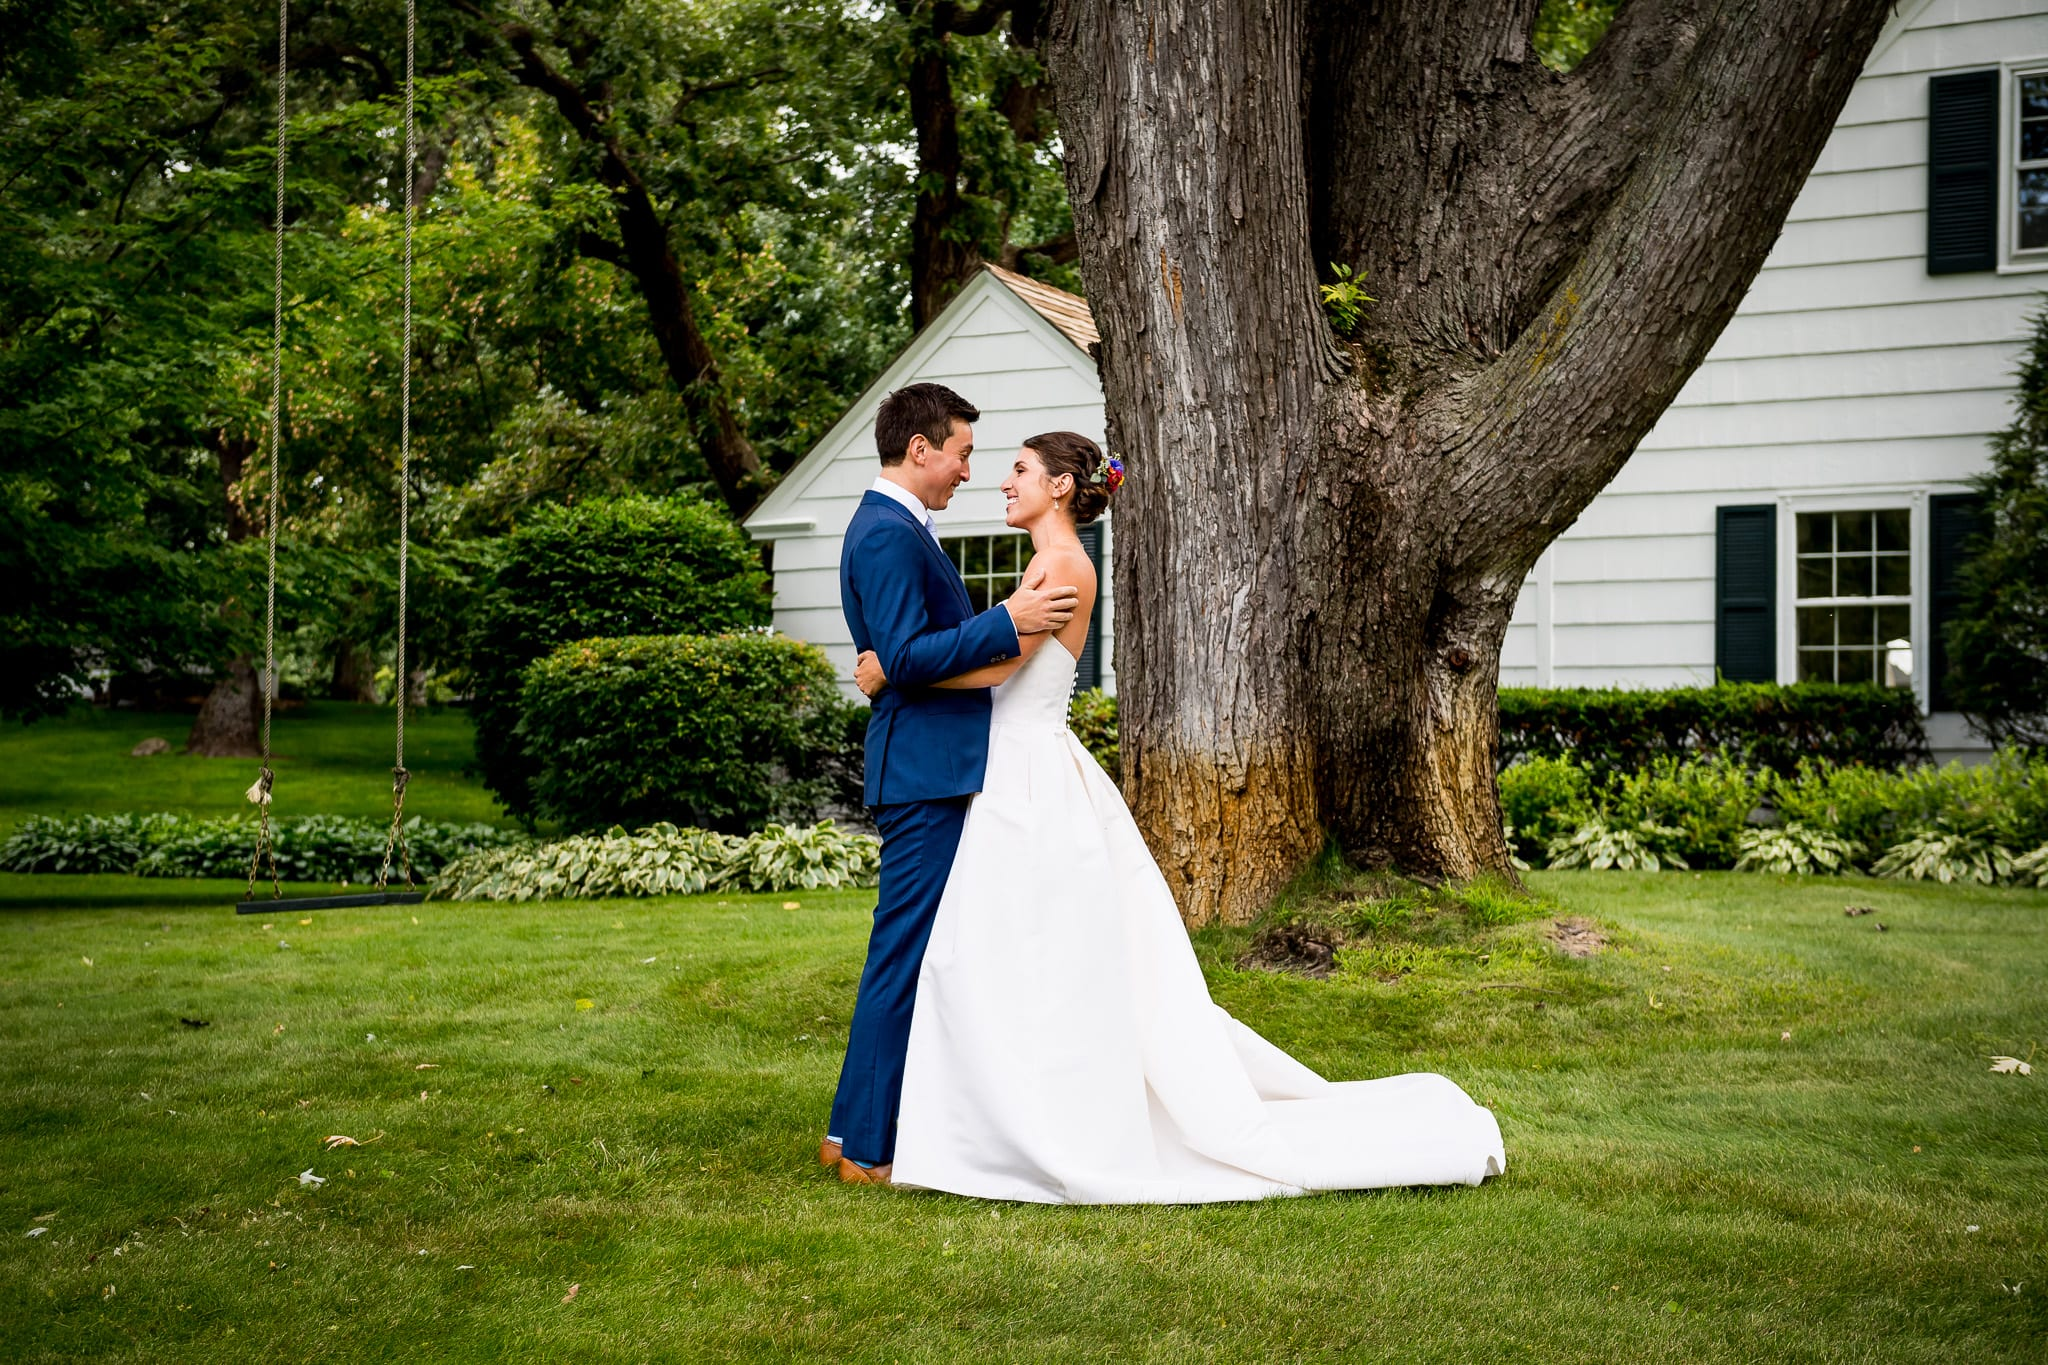 Bride and groom see each other for the first time on their wedding day on a lush green lawn, in front of a large tree and tree swing